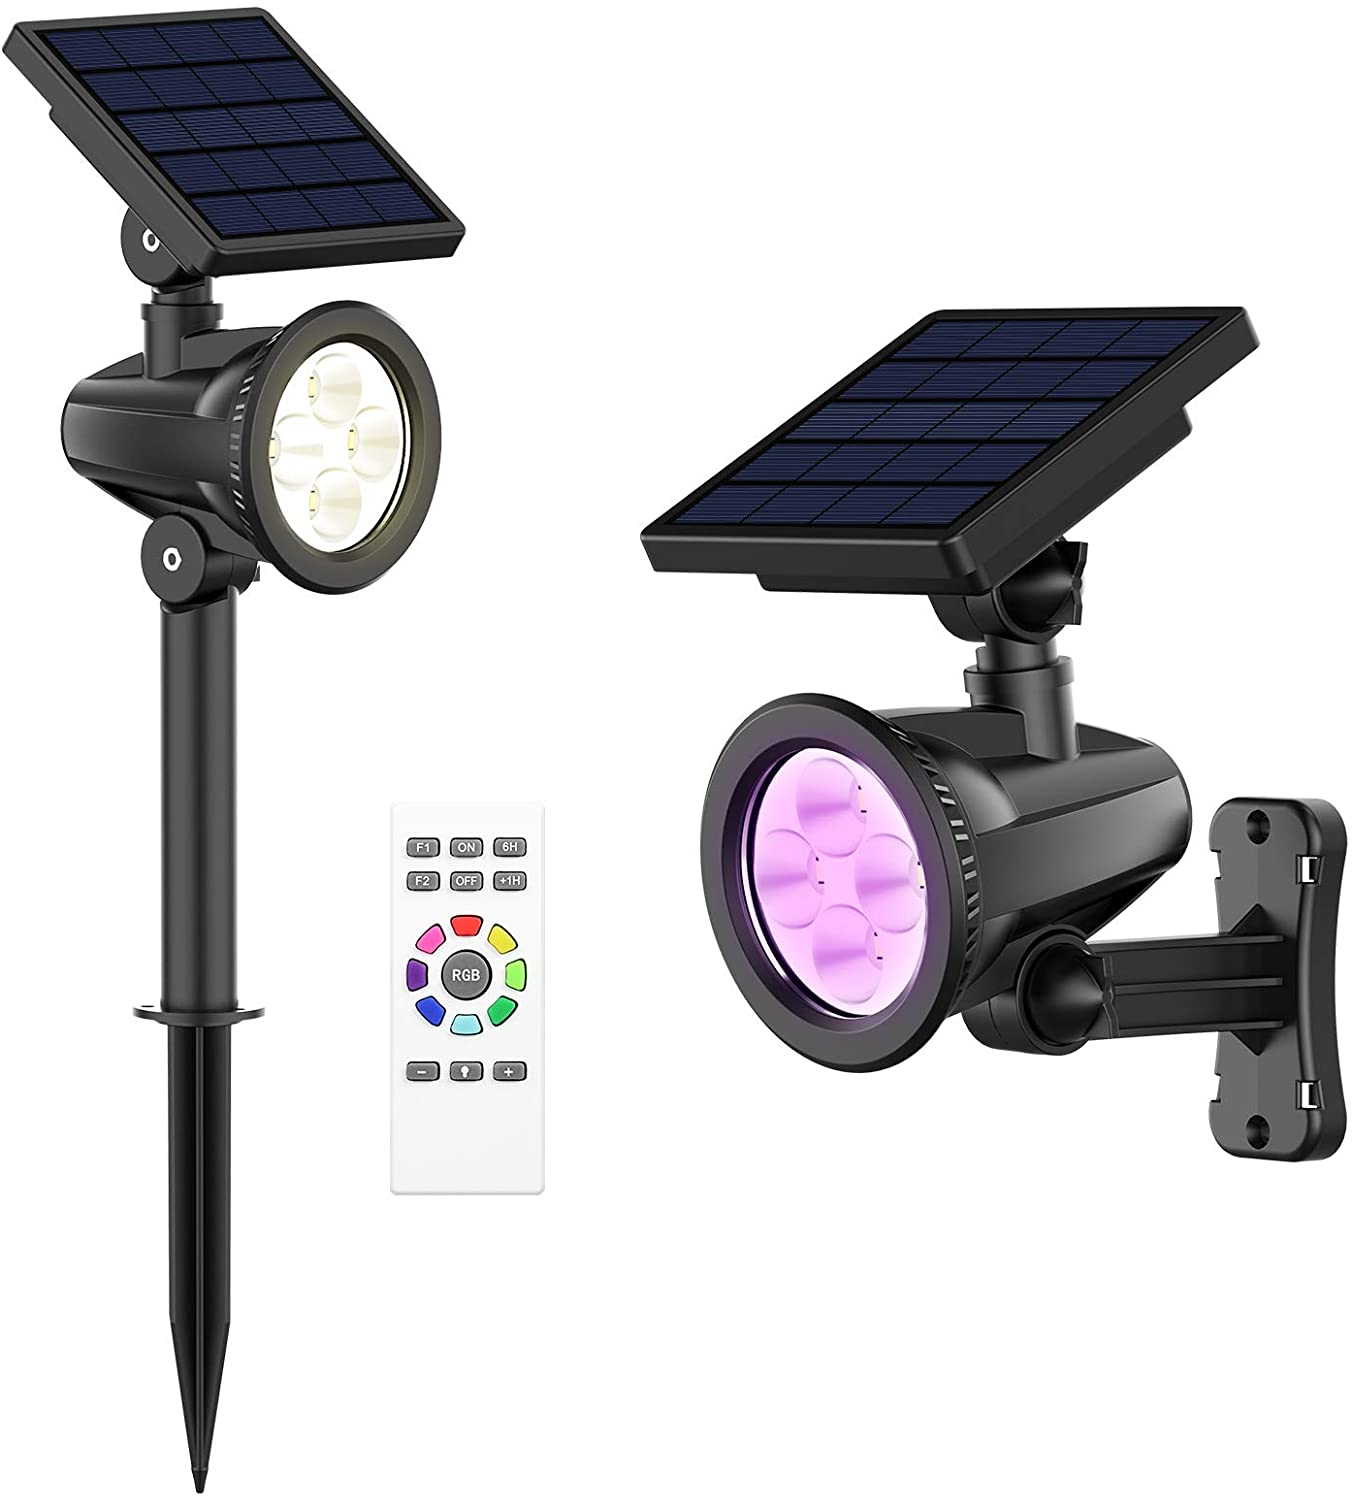 intelamp 2Pack Solar Spotlight, Outdoor Lights Waterproof, Remote Control On Brightness and Color Change, Long Time High Brightness, for Yard Deck Patio Pool Pathway